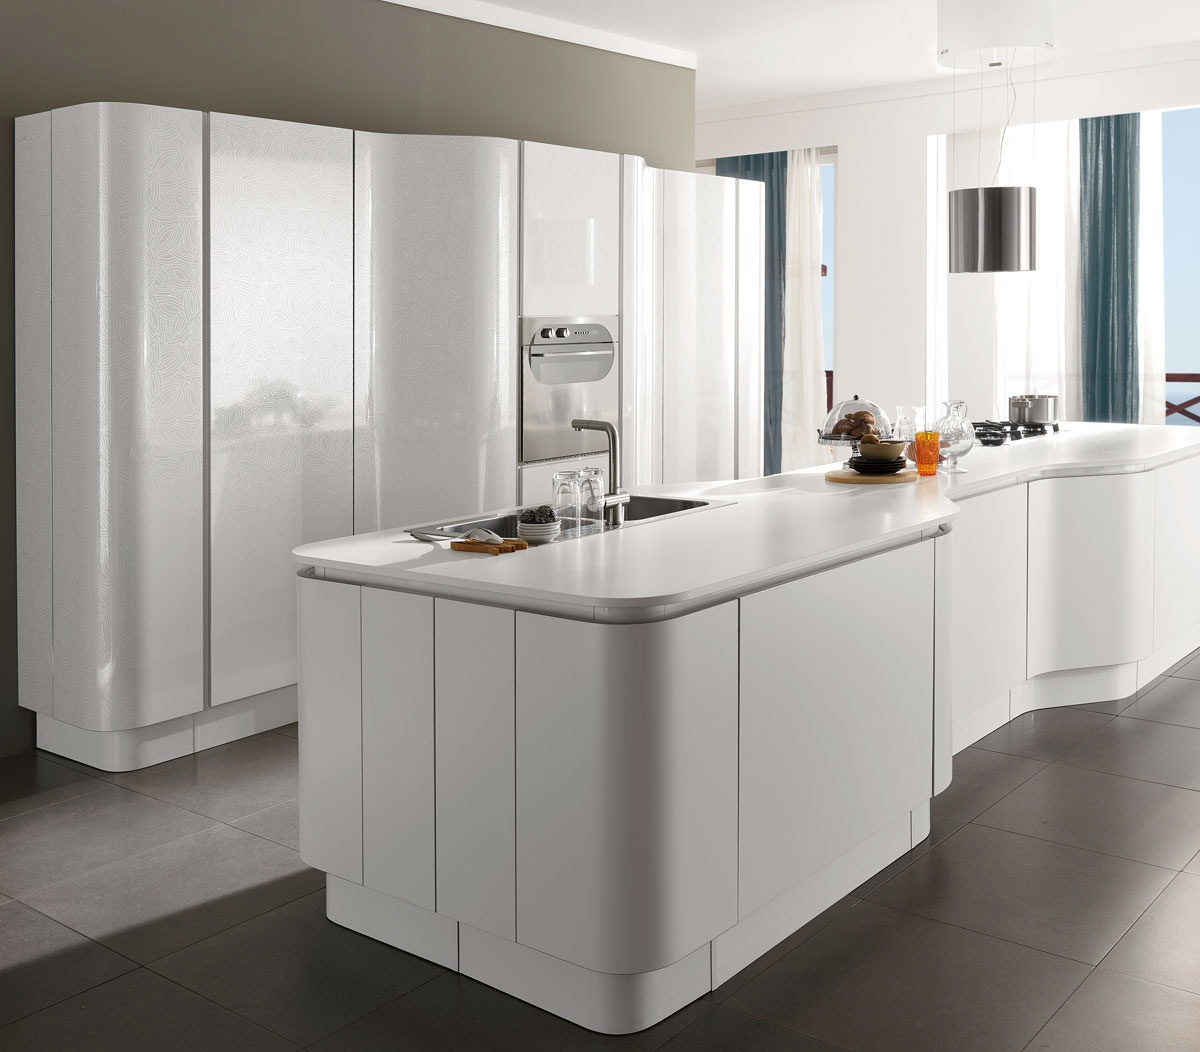 Kitchen (kitchen set) white wooden frame Miro Colours, Aran Cucine ...